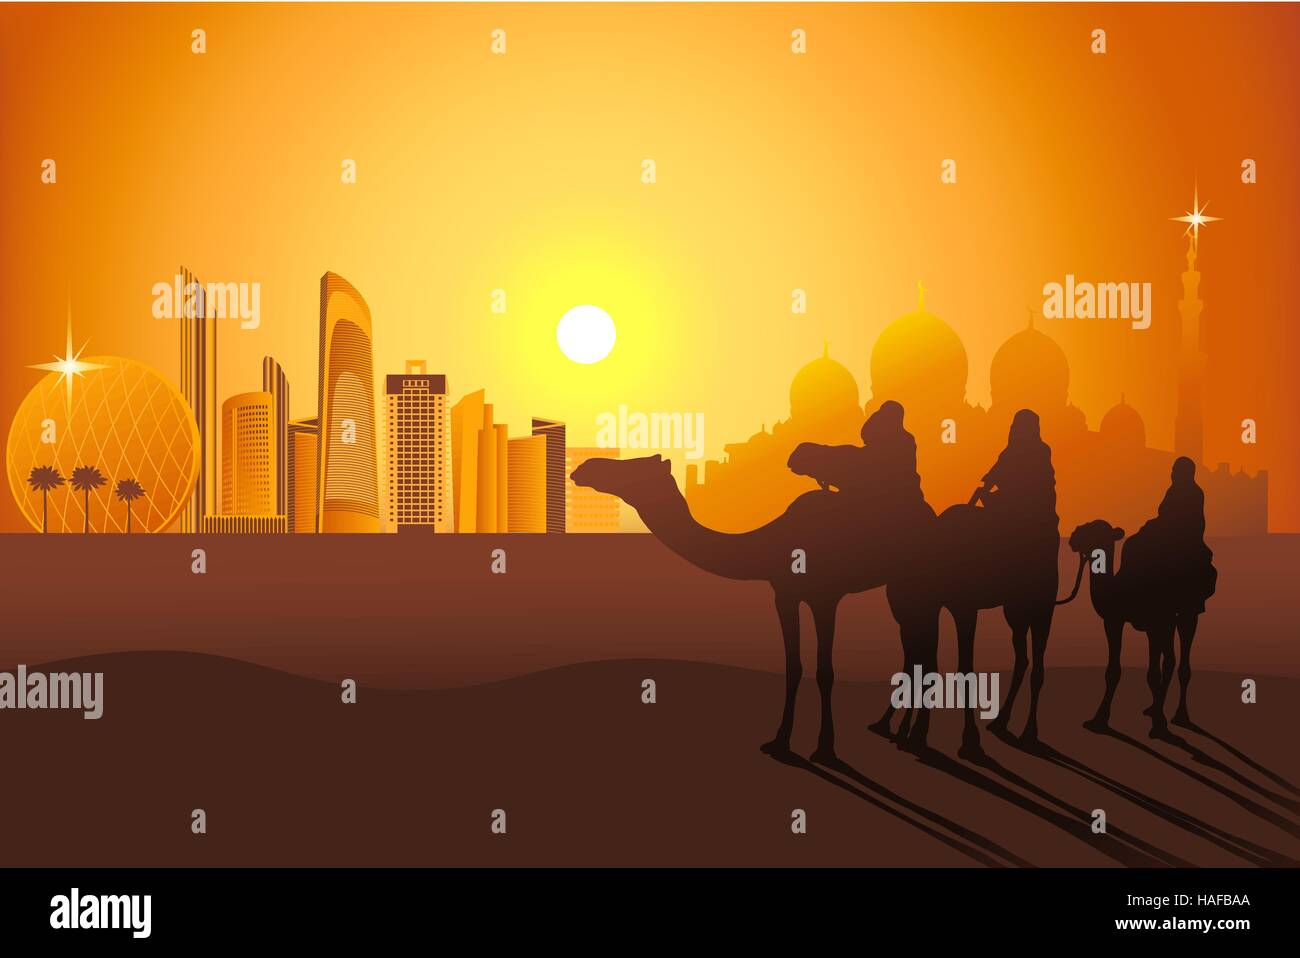 Three camel riders at the sunset in the desert on the Abu-Dhabi background vector illustration - Stock Vector